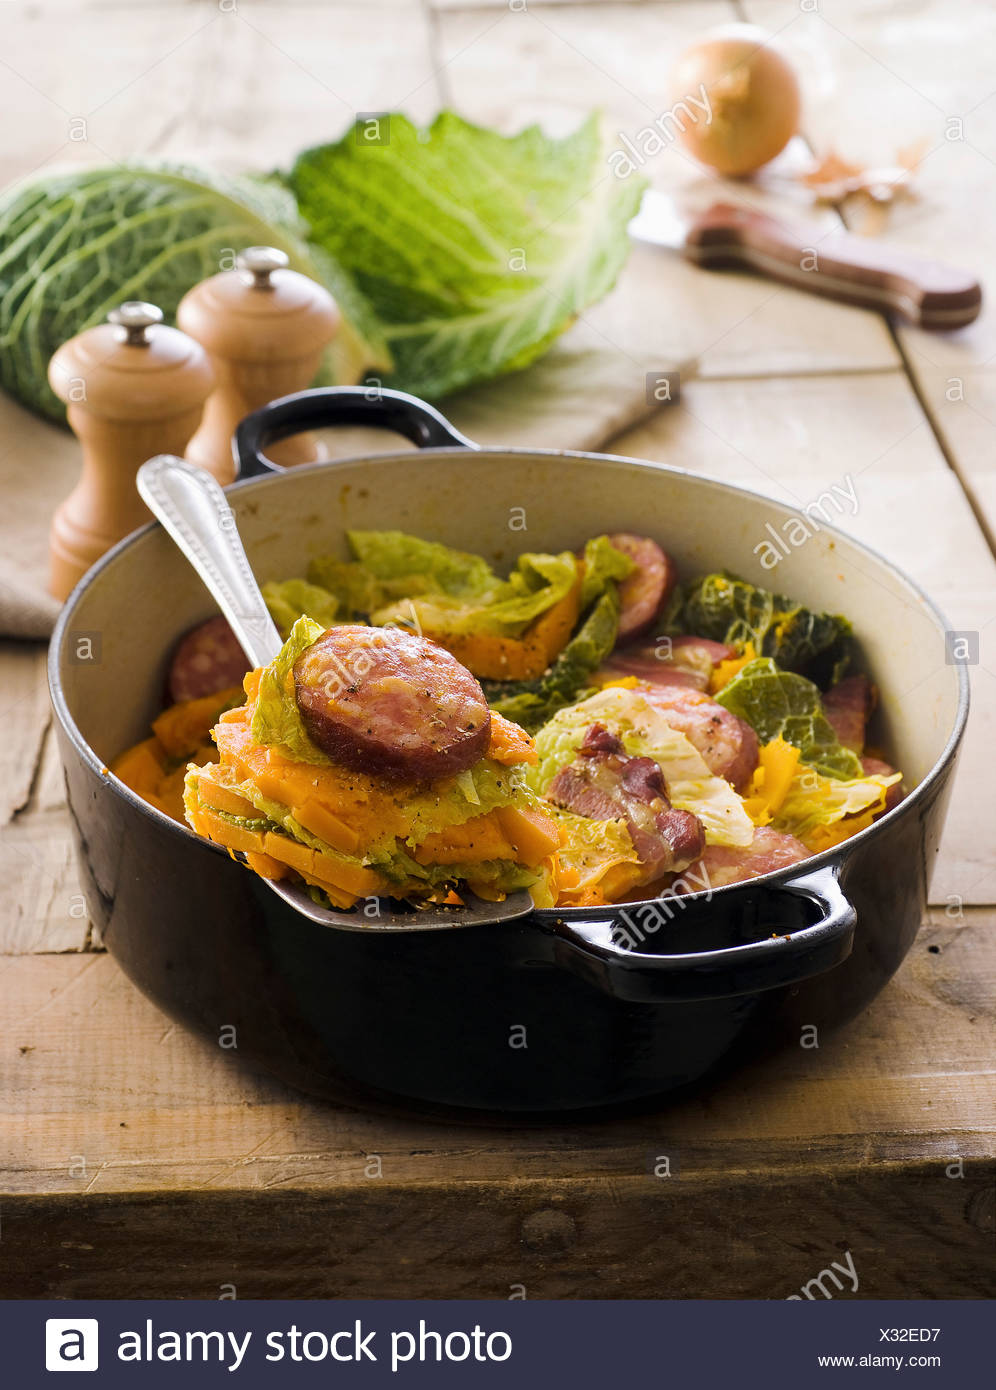 Pumpkin,cabbage and Morteau sausage hotpot - Stock Image